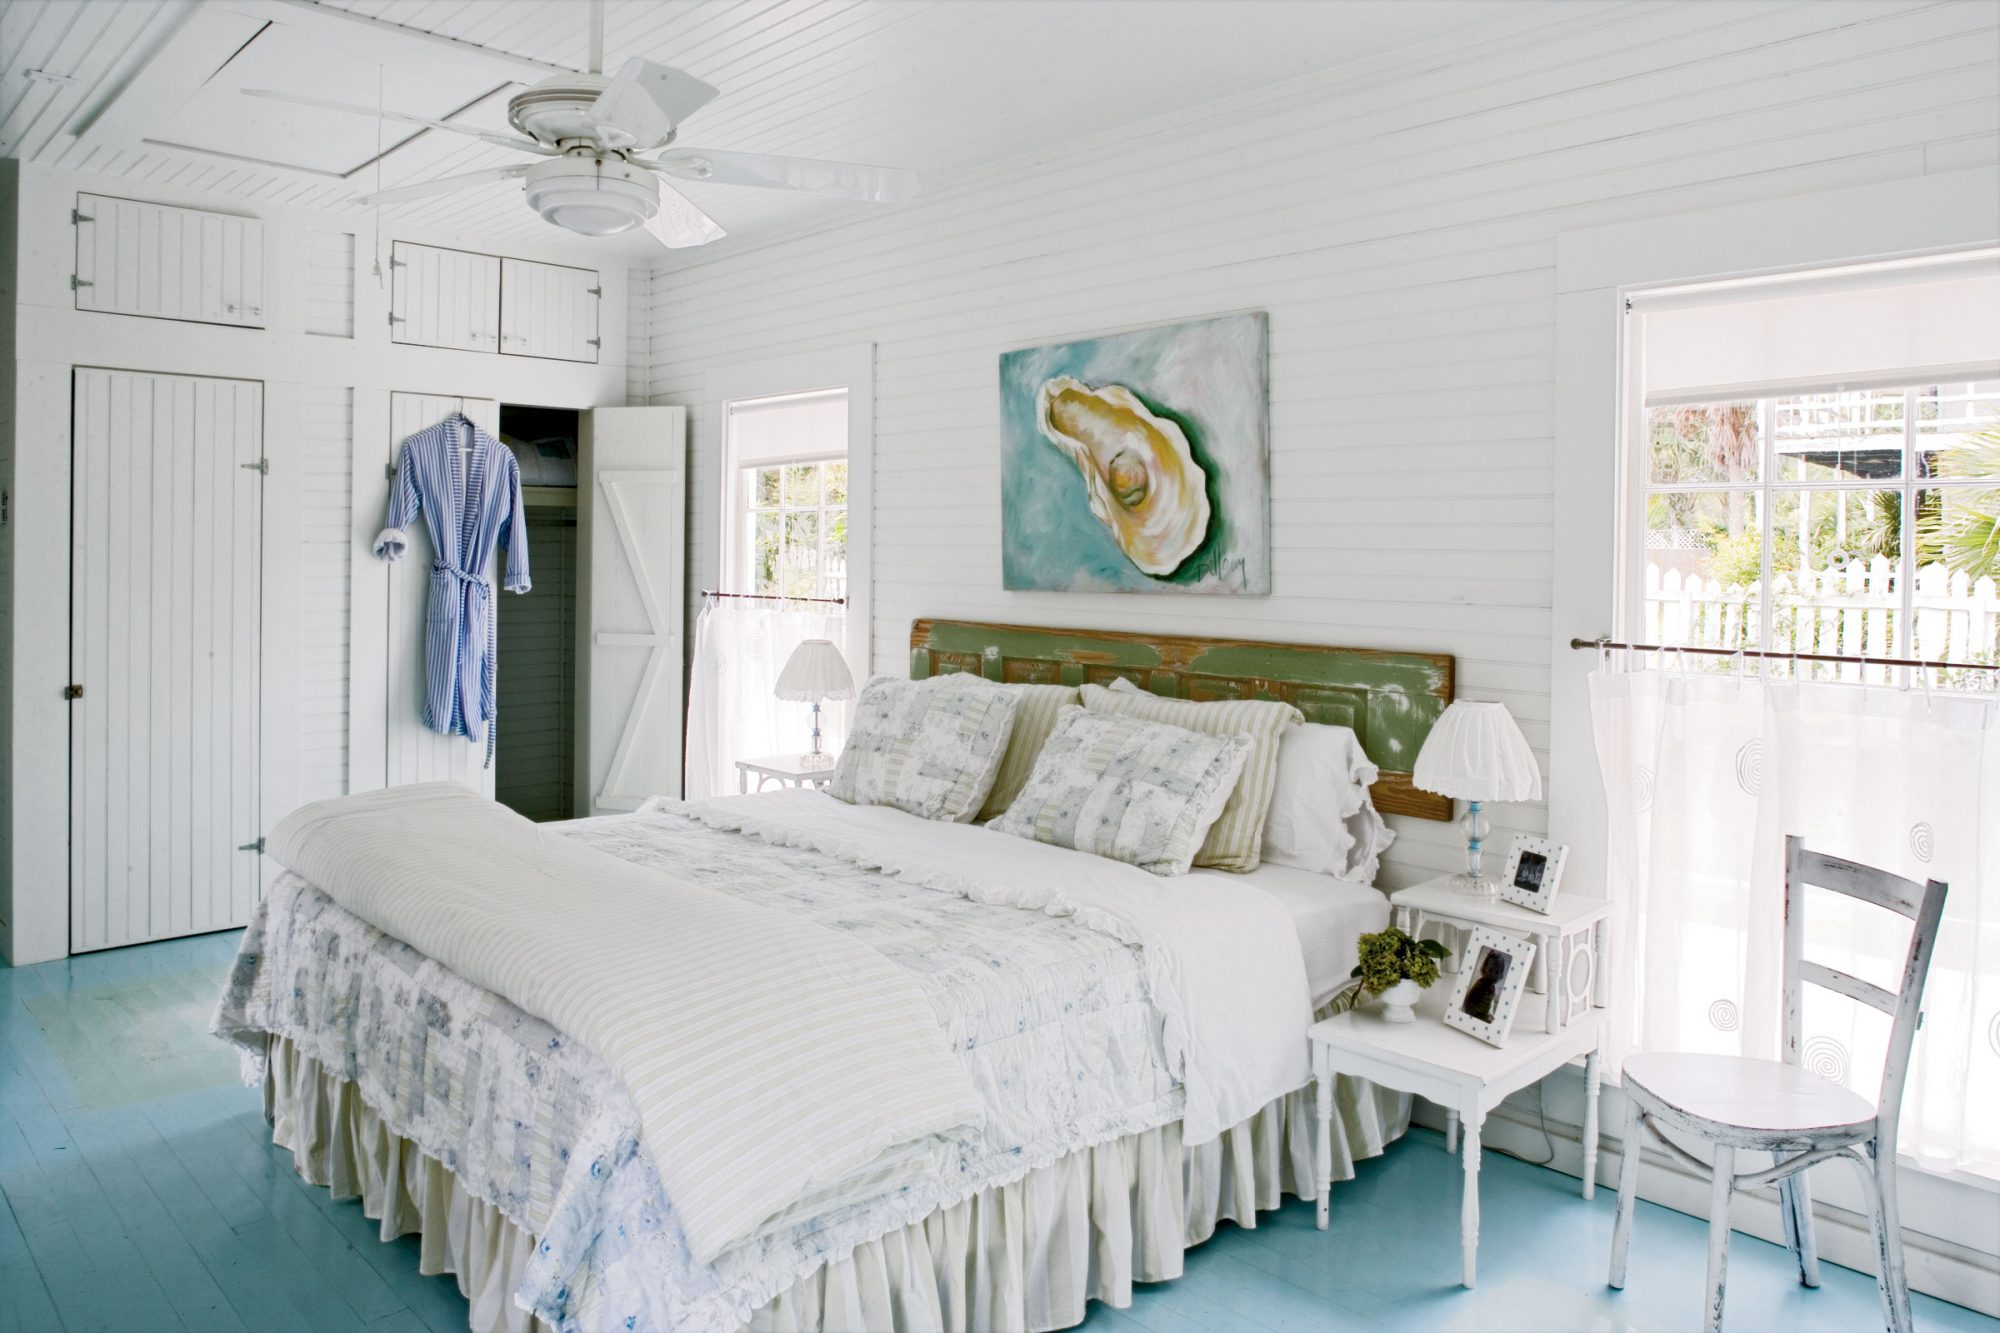 White beachy bedroom with wood white-washed closet doors and small side tables and chairs